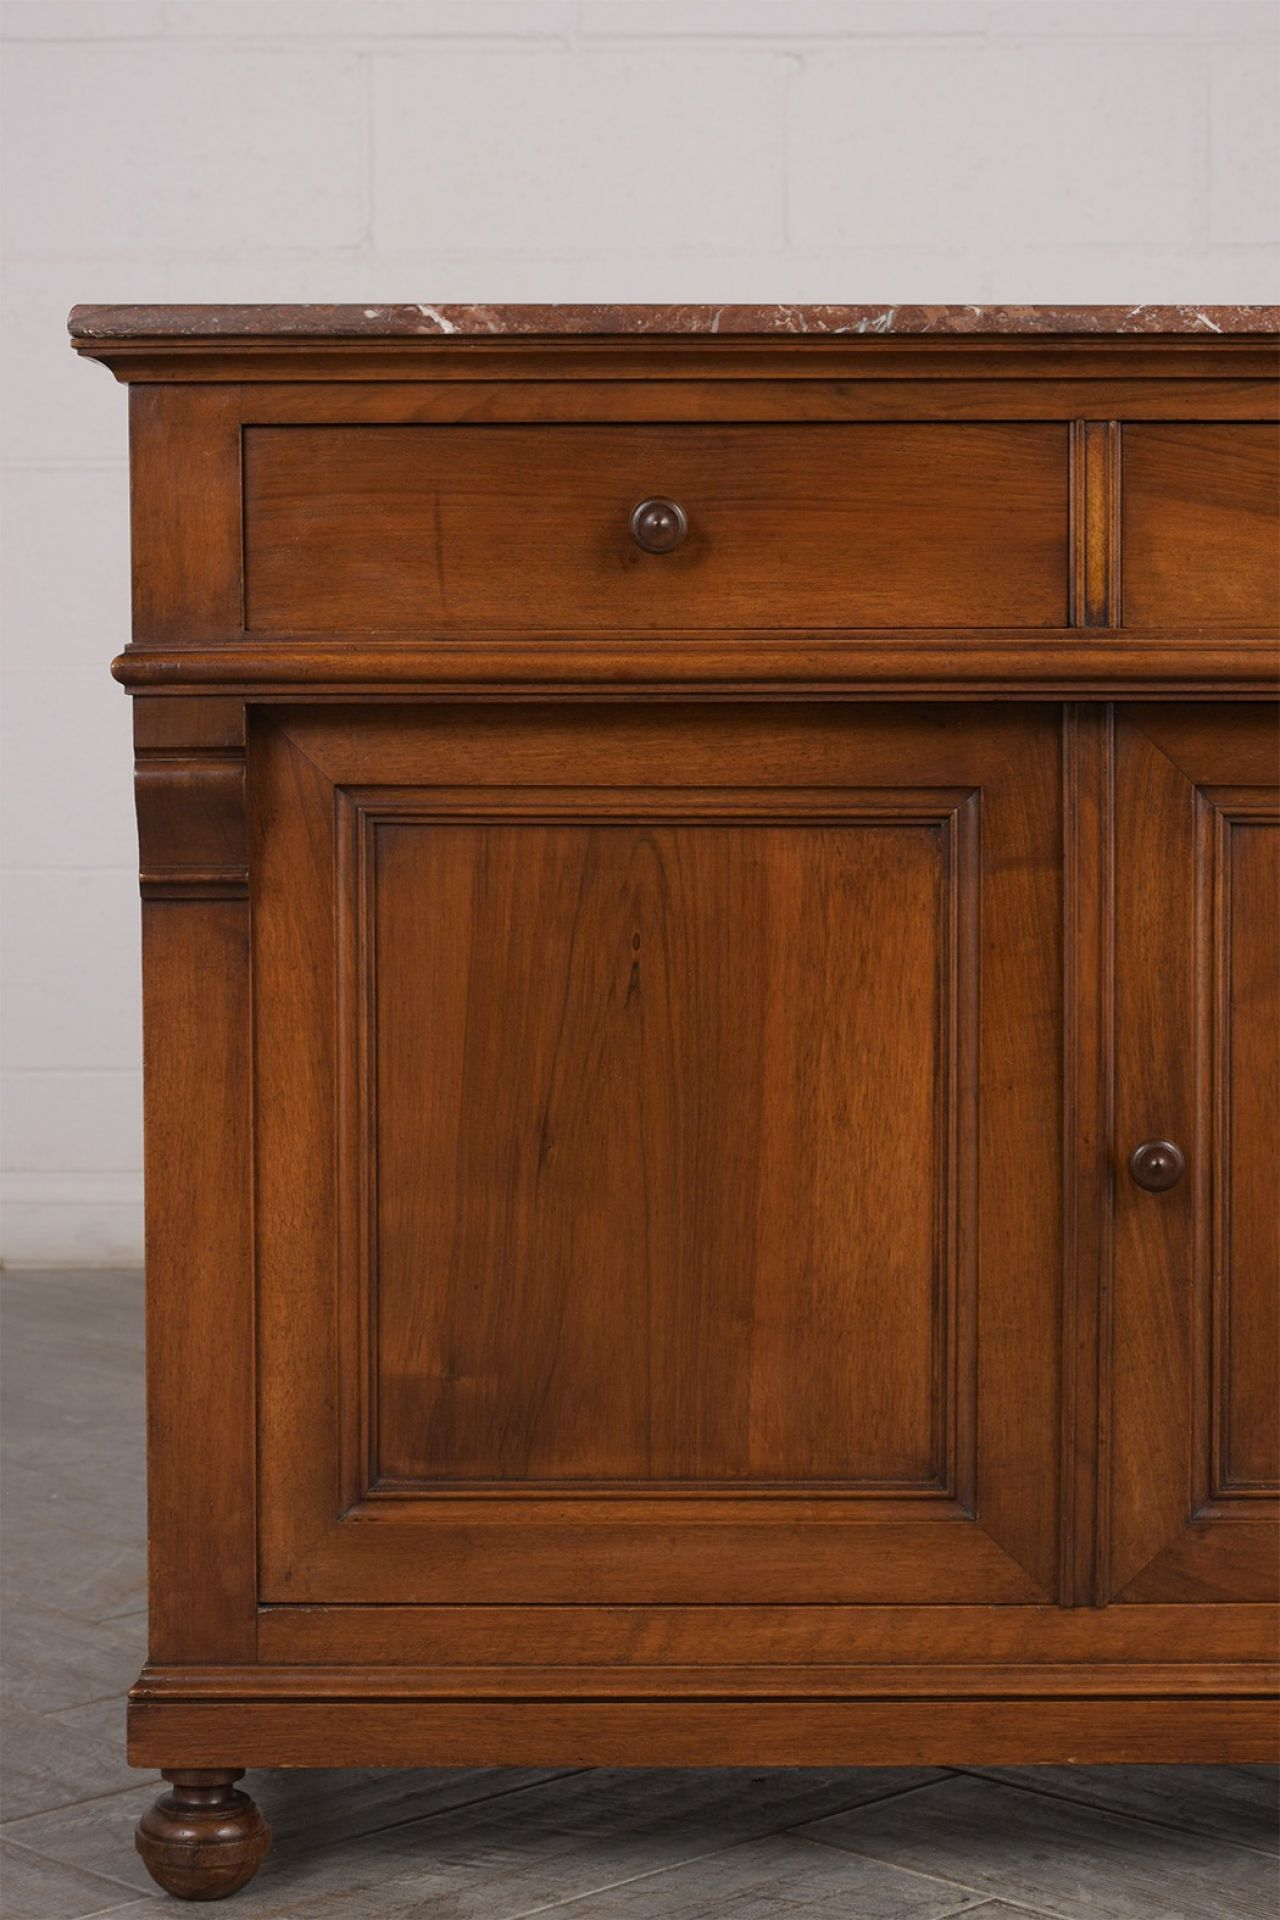 French Renaissance 1890's Walnut Wood Cabinet with Rouge Marble Top